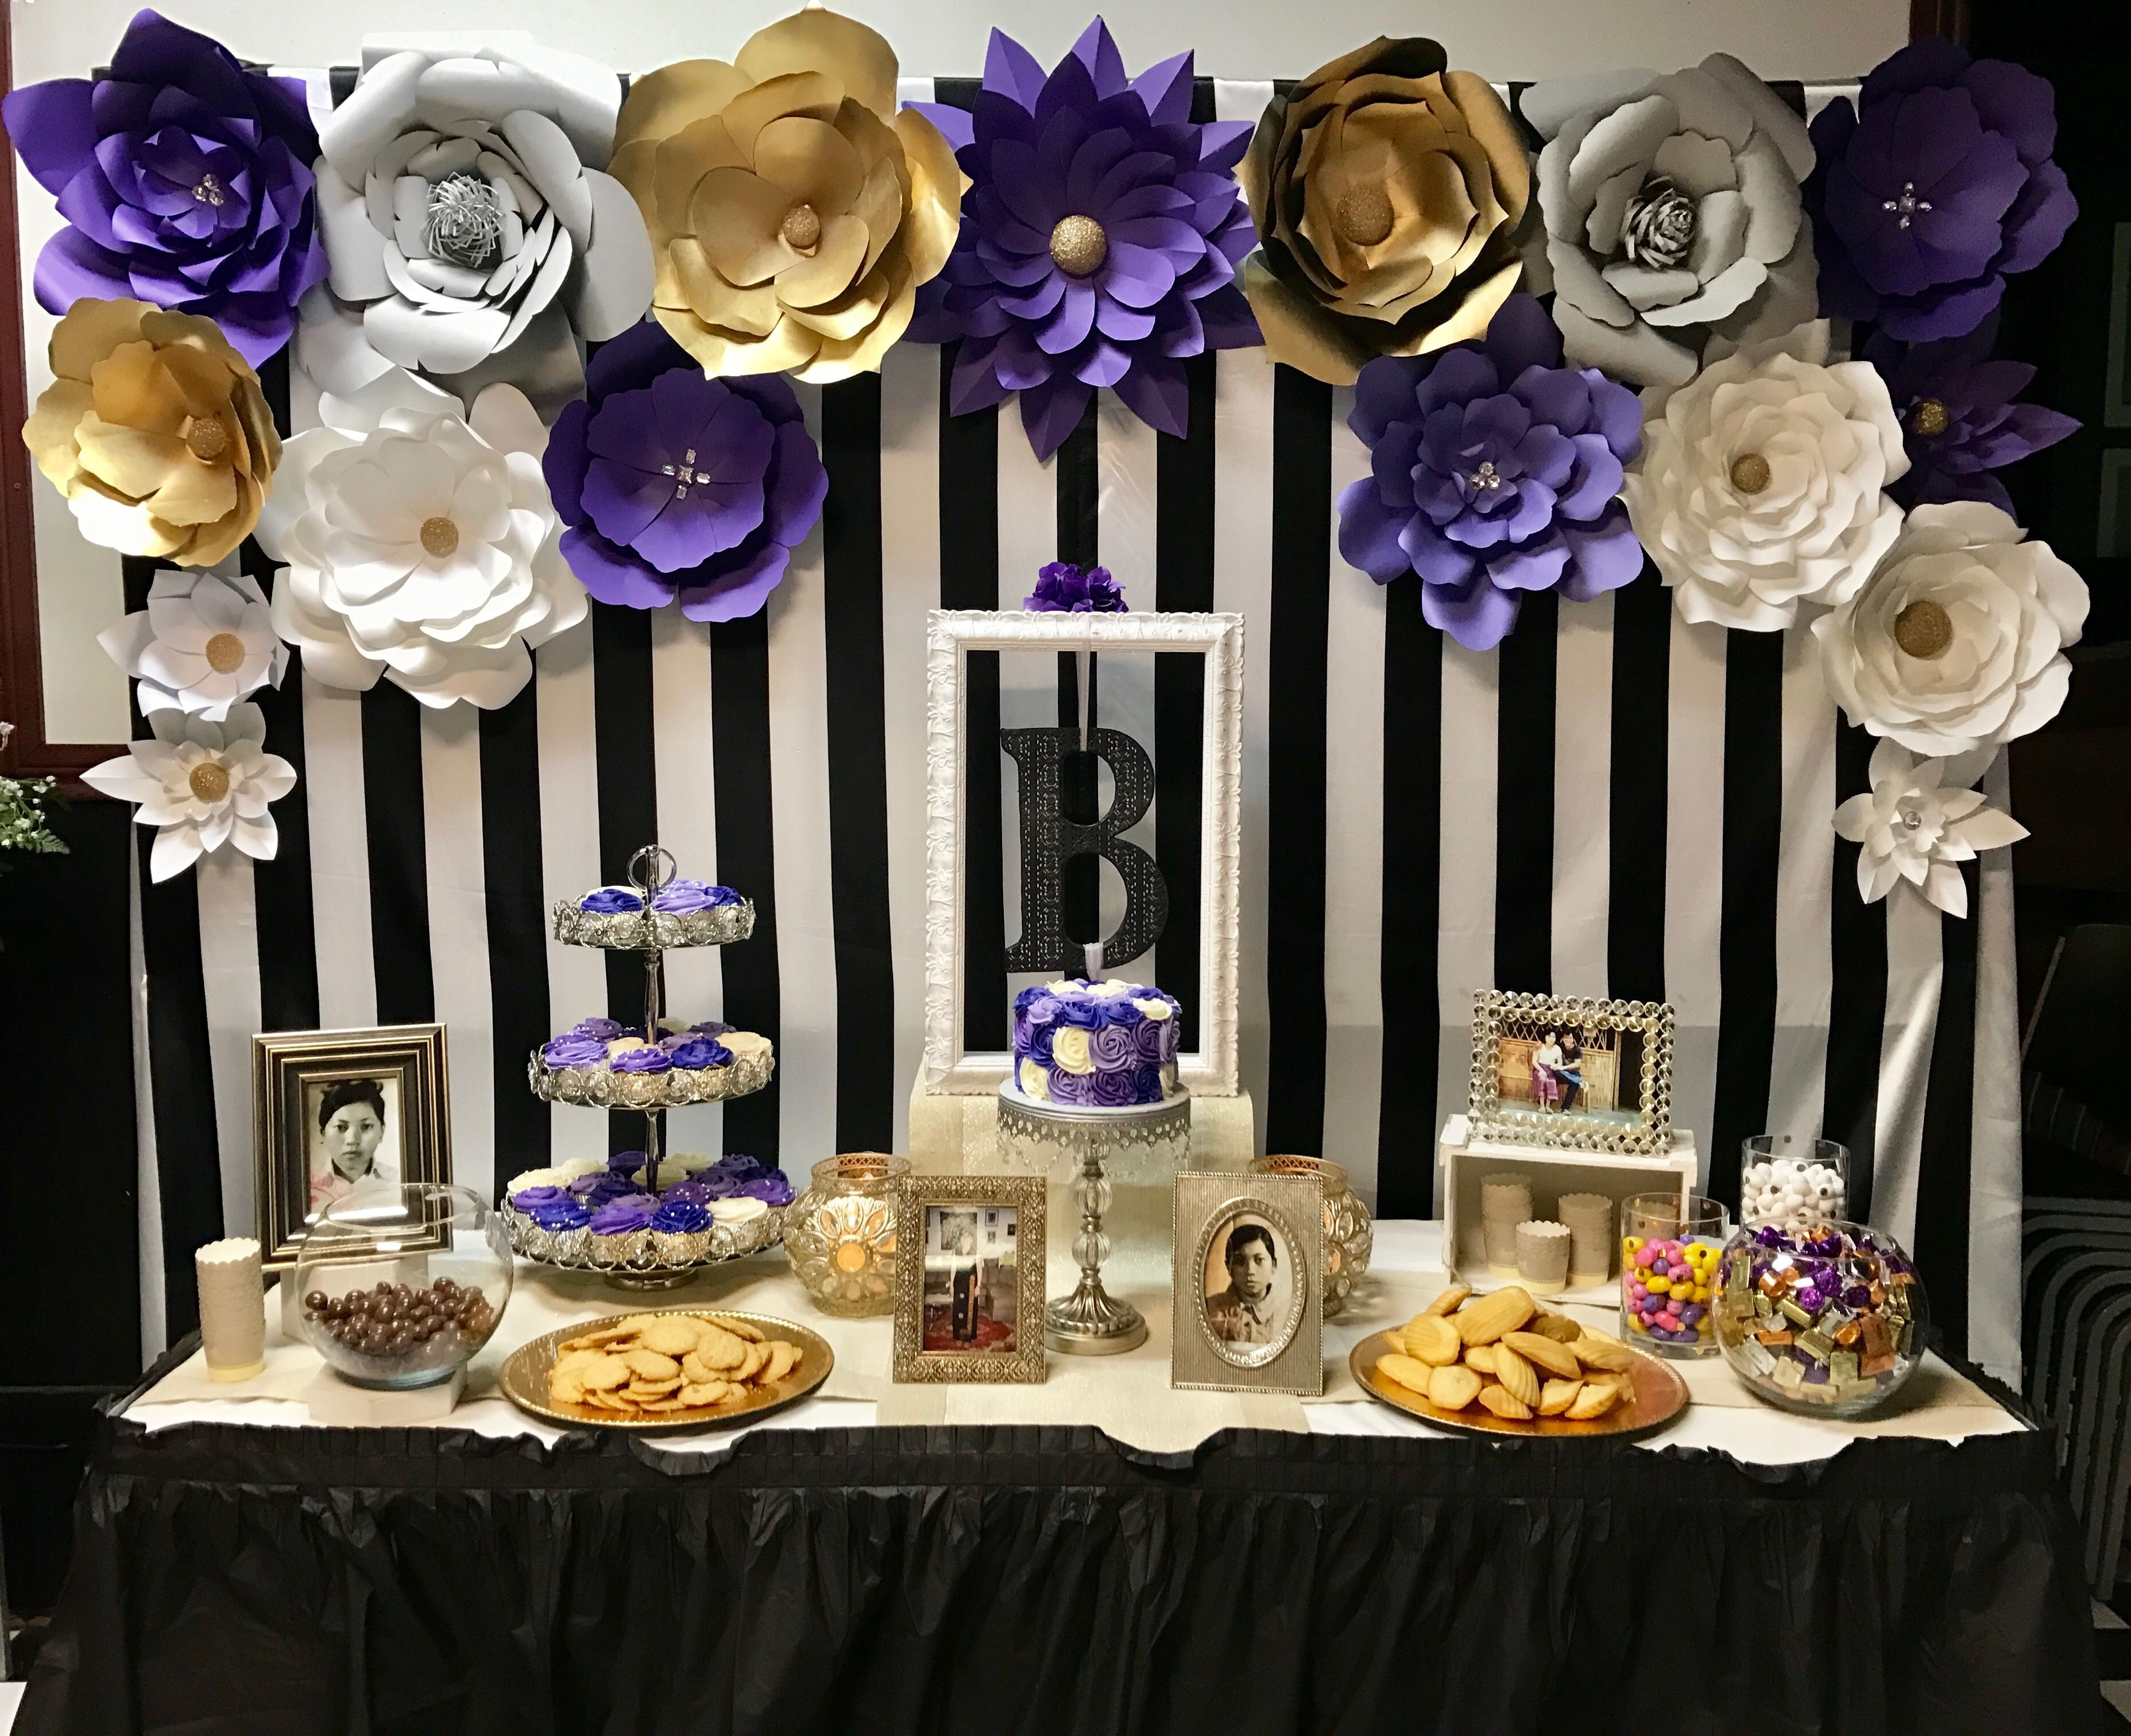 Dessert table with paper flowers backdrop for purple themed 60th birthday party  #purple #birthdayparty #50th #60th